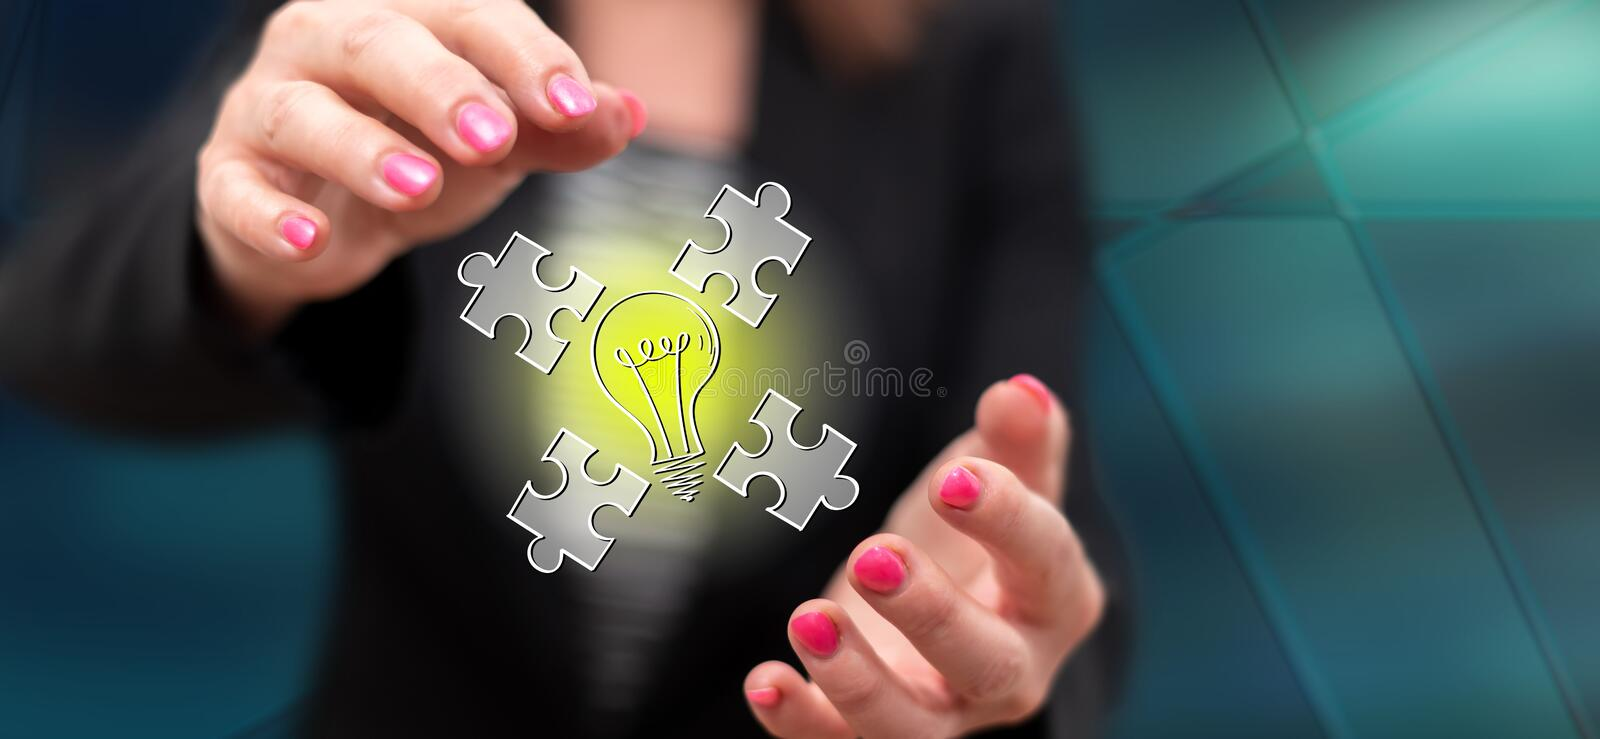 Concept of teamwork idea. Teamwork idea concept between hands of a woman in background royalty free stock photos